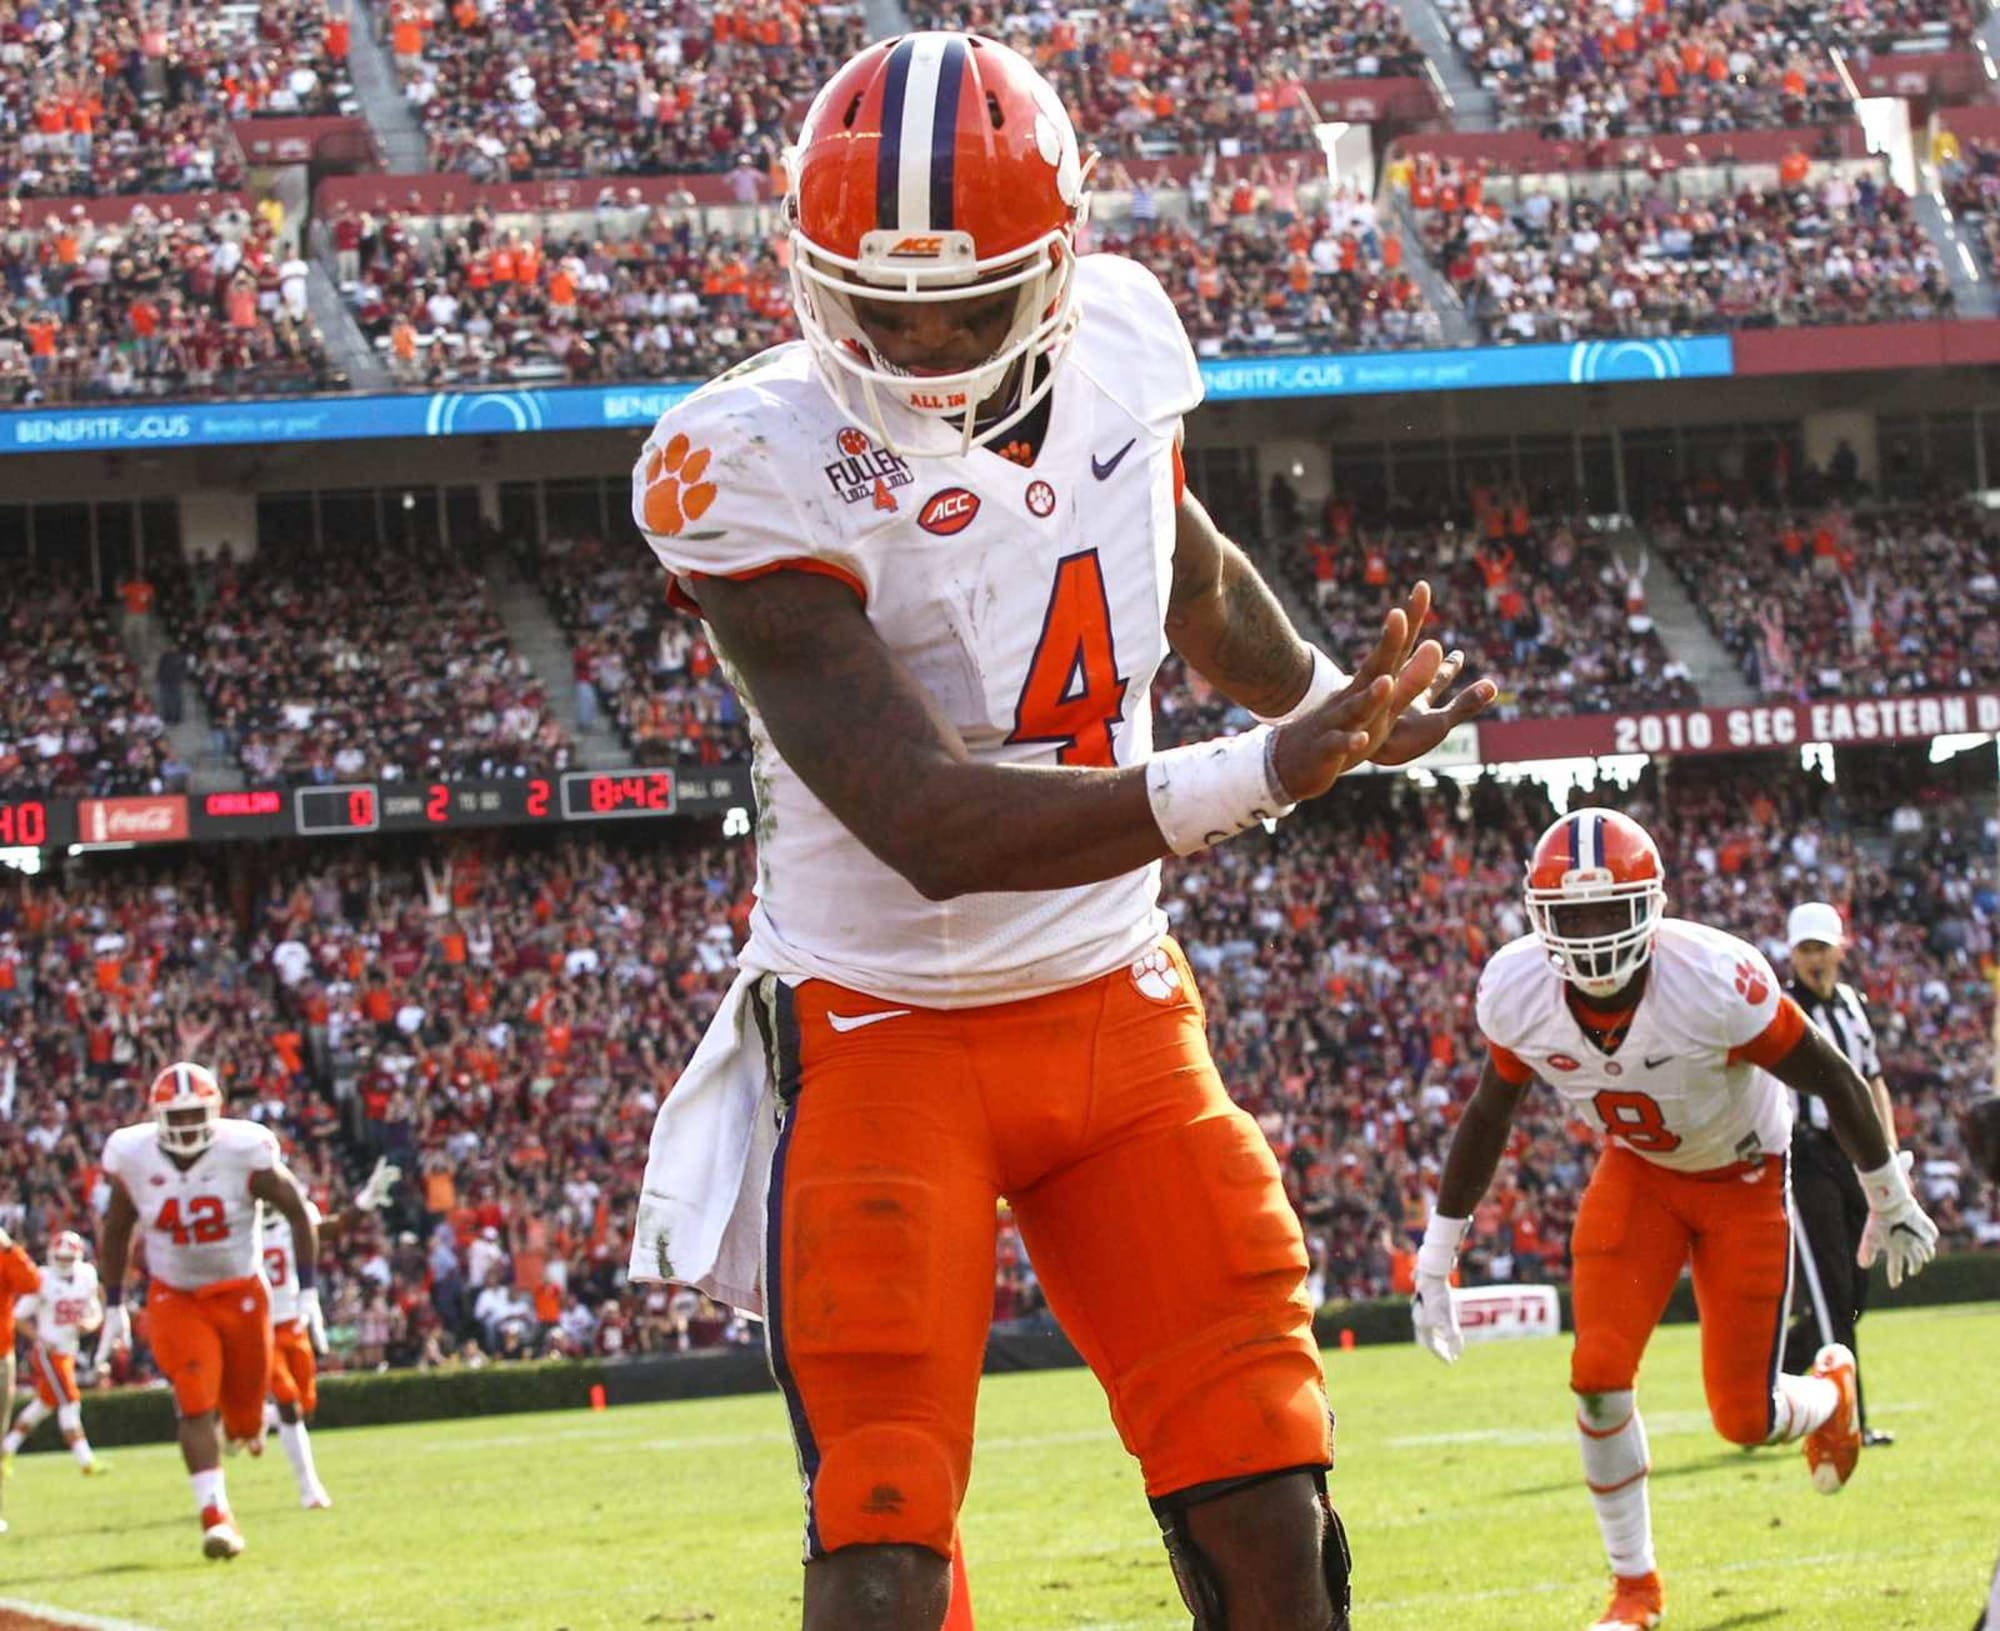 Clemson football: 4 jersey numbers should be considered for retirement